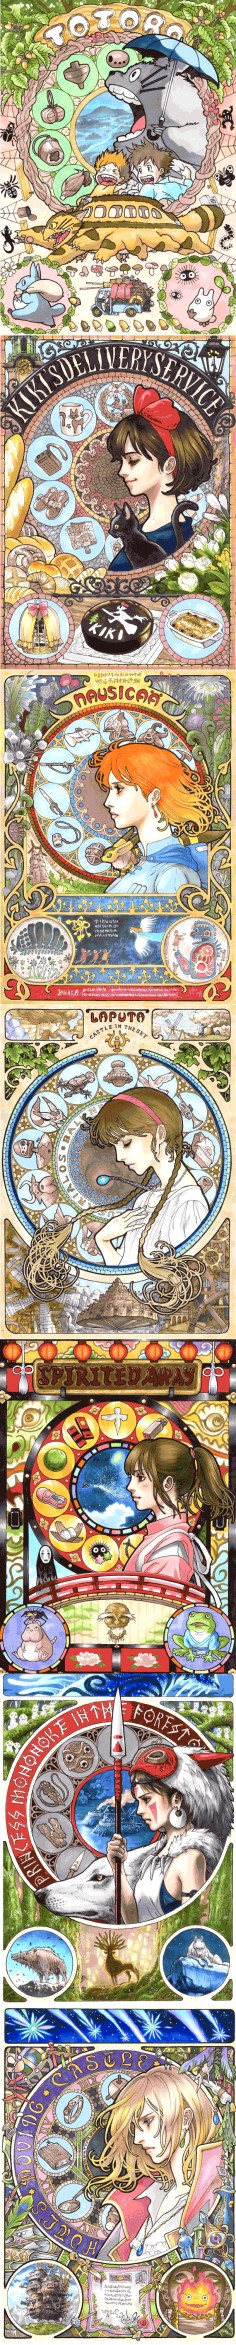 STUDIO GHIBLI art nouveaux.  Absolutely wonderful.  I especially love the extras in the spirited away and the hair in the laputa piece.